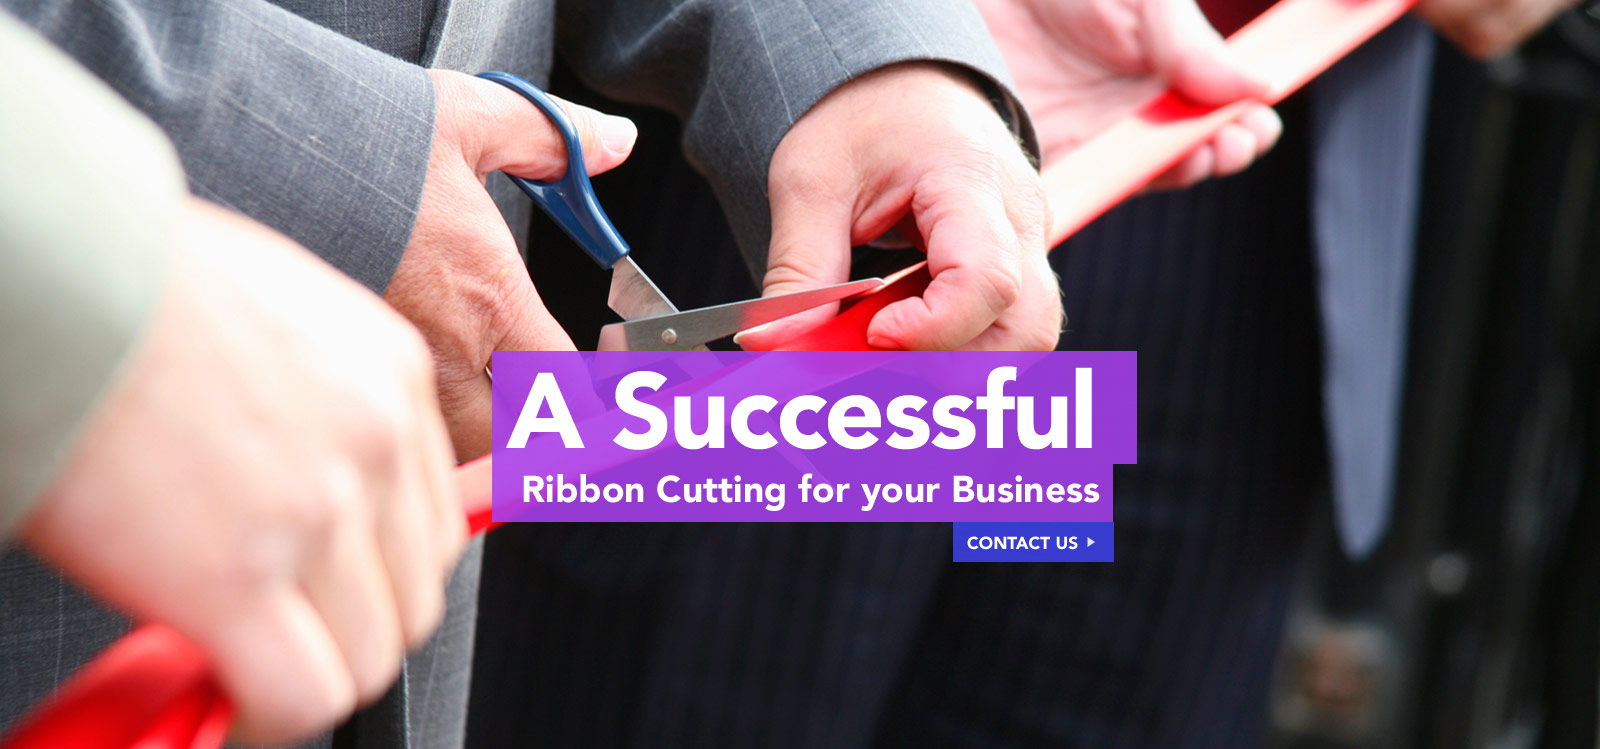 A Successful Ribbon Cutting for your Business